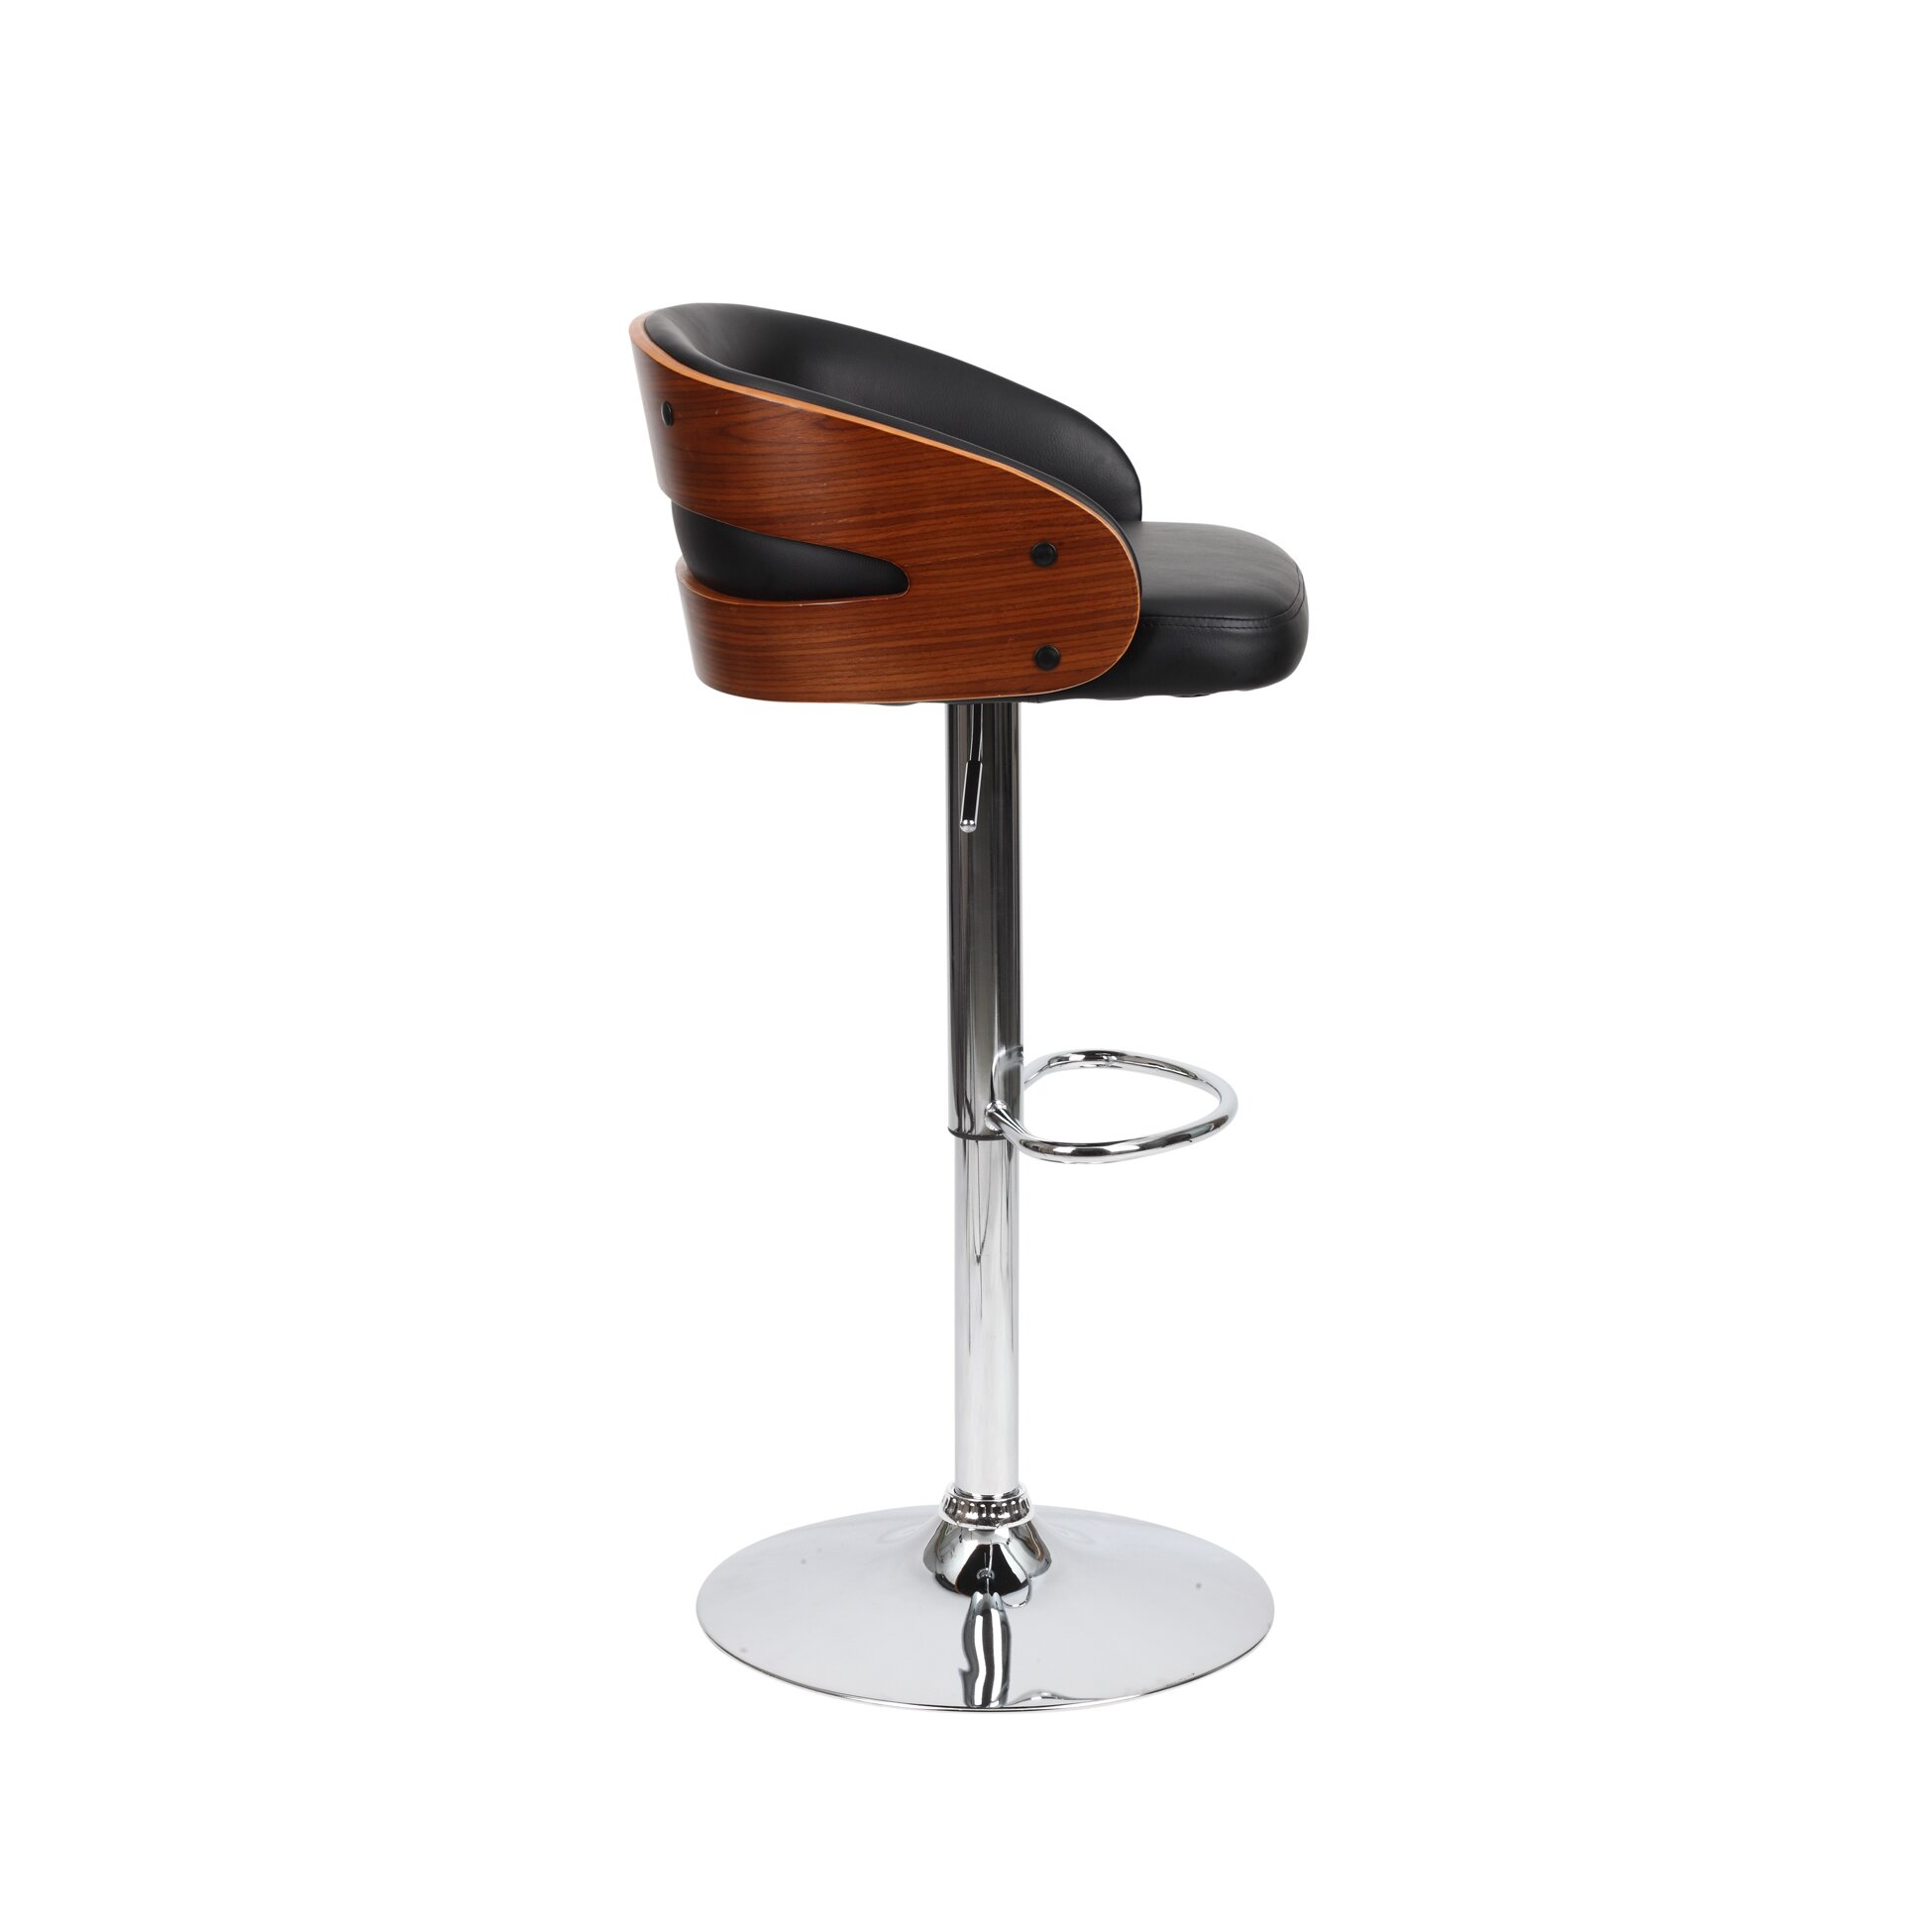 Home Etc Swivel Adjustable Bar Stool amp Reviews Wayfaircouk : Home Etc Swivel Adjustable Bar Stool from www.wayfair.co.uk size 1950 x 1950 jpeg 136kB